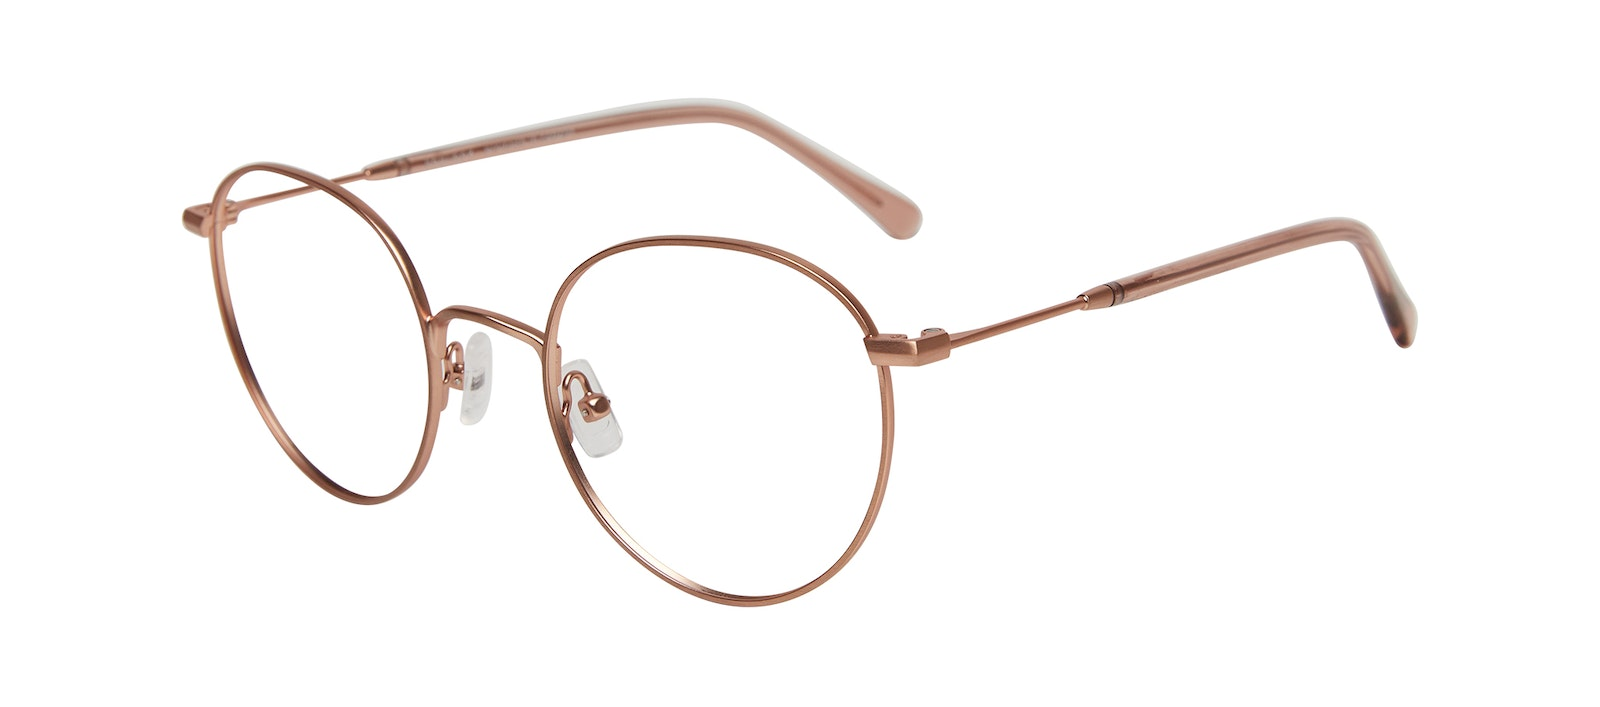 Affordable Fashion Glasses Round Eyeglasses Women Finesse Matte Pink Tilt